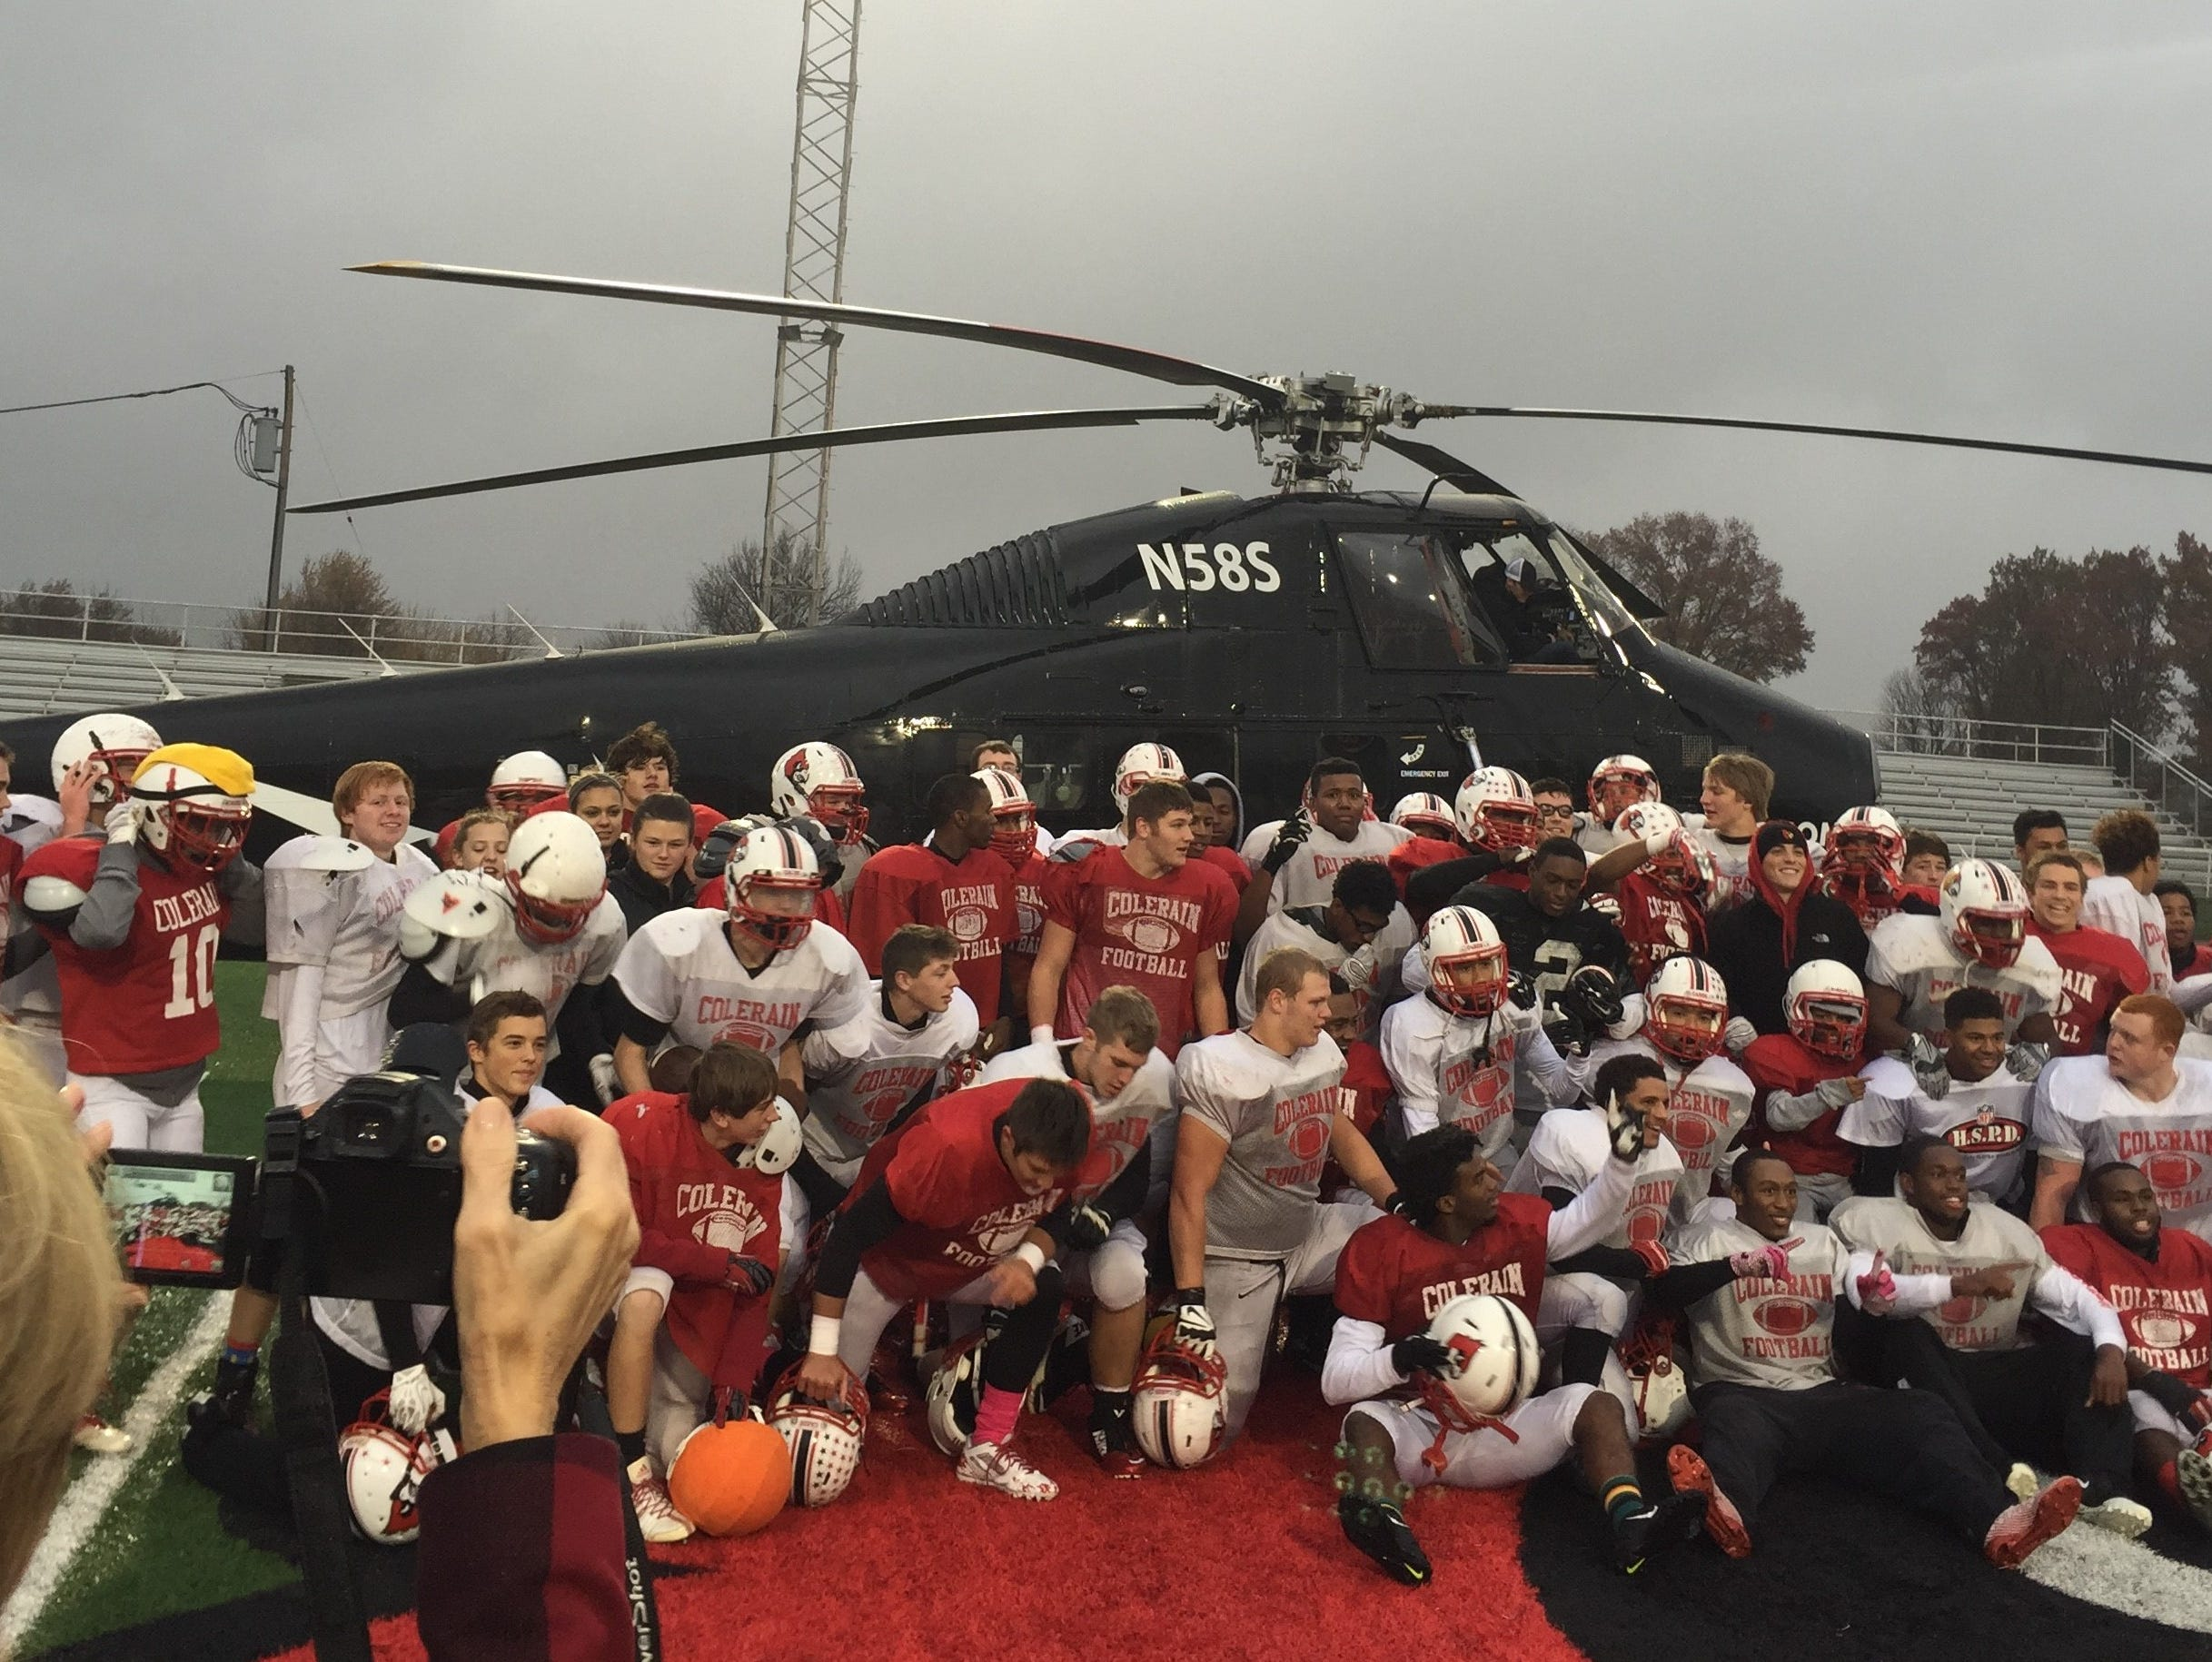 Colerain gathered in front of Nike's helicopter for a photo before seeing new cold weather football gear delivered by Nike Nov. 6, 2014.